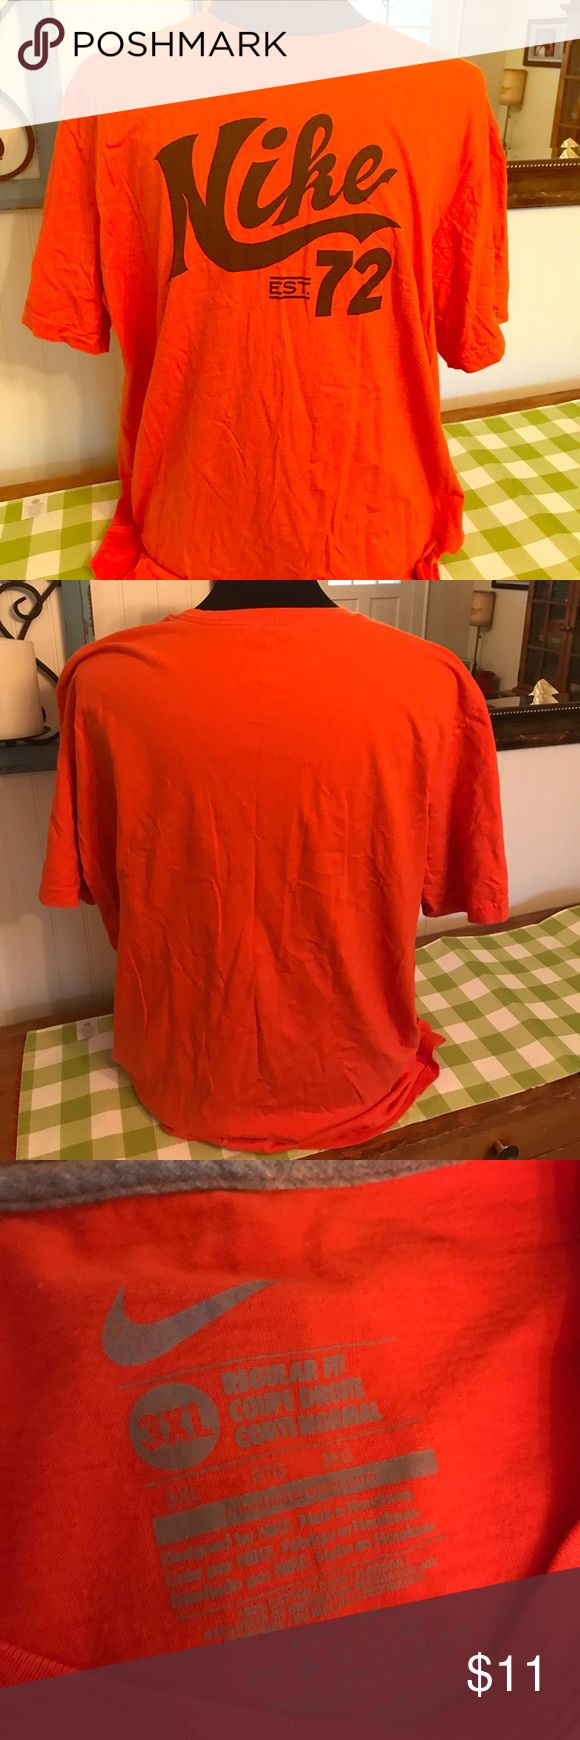 Orange Nike 72 T Shirt Men's 3XL Big Tall Tee Shirt is in very good gently worn condition! Very nice color that pairs well with blue basketball pants or shorts!   Size 3XL   From a smoke & pet free home!  I have lots of Big & Tall clothes listed so please check out my closet! Nike Shirts Tees - Short Sleeve